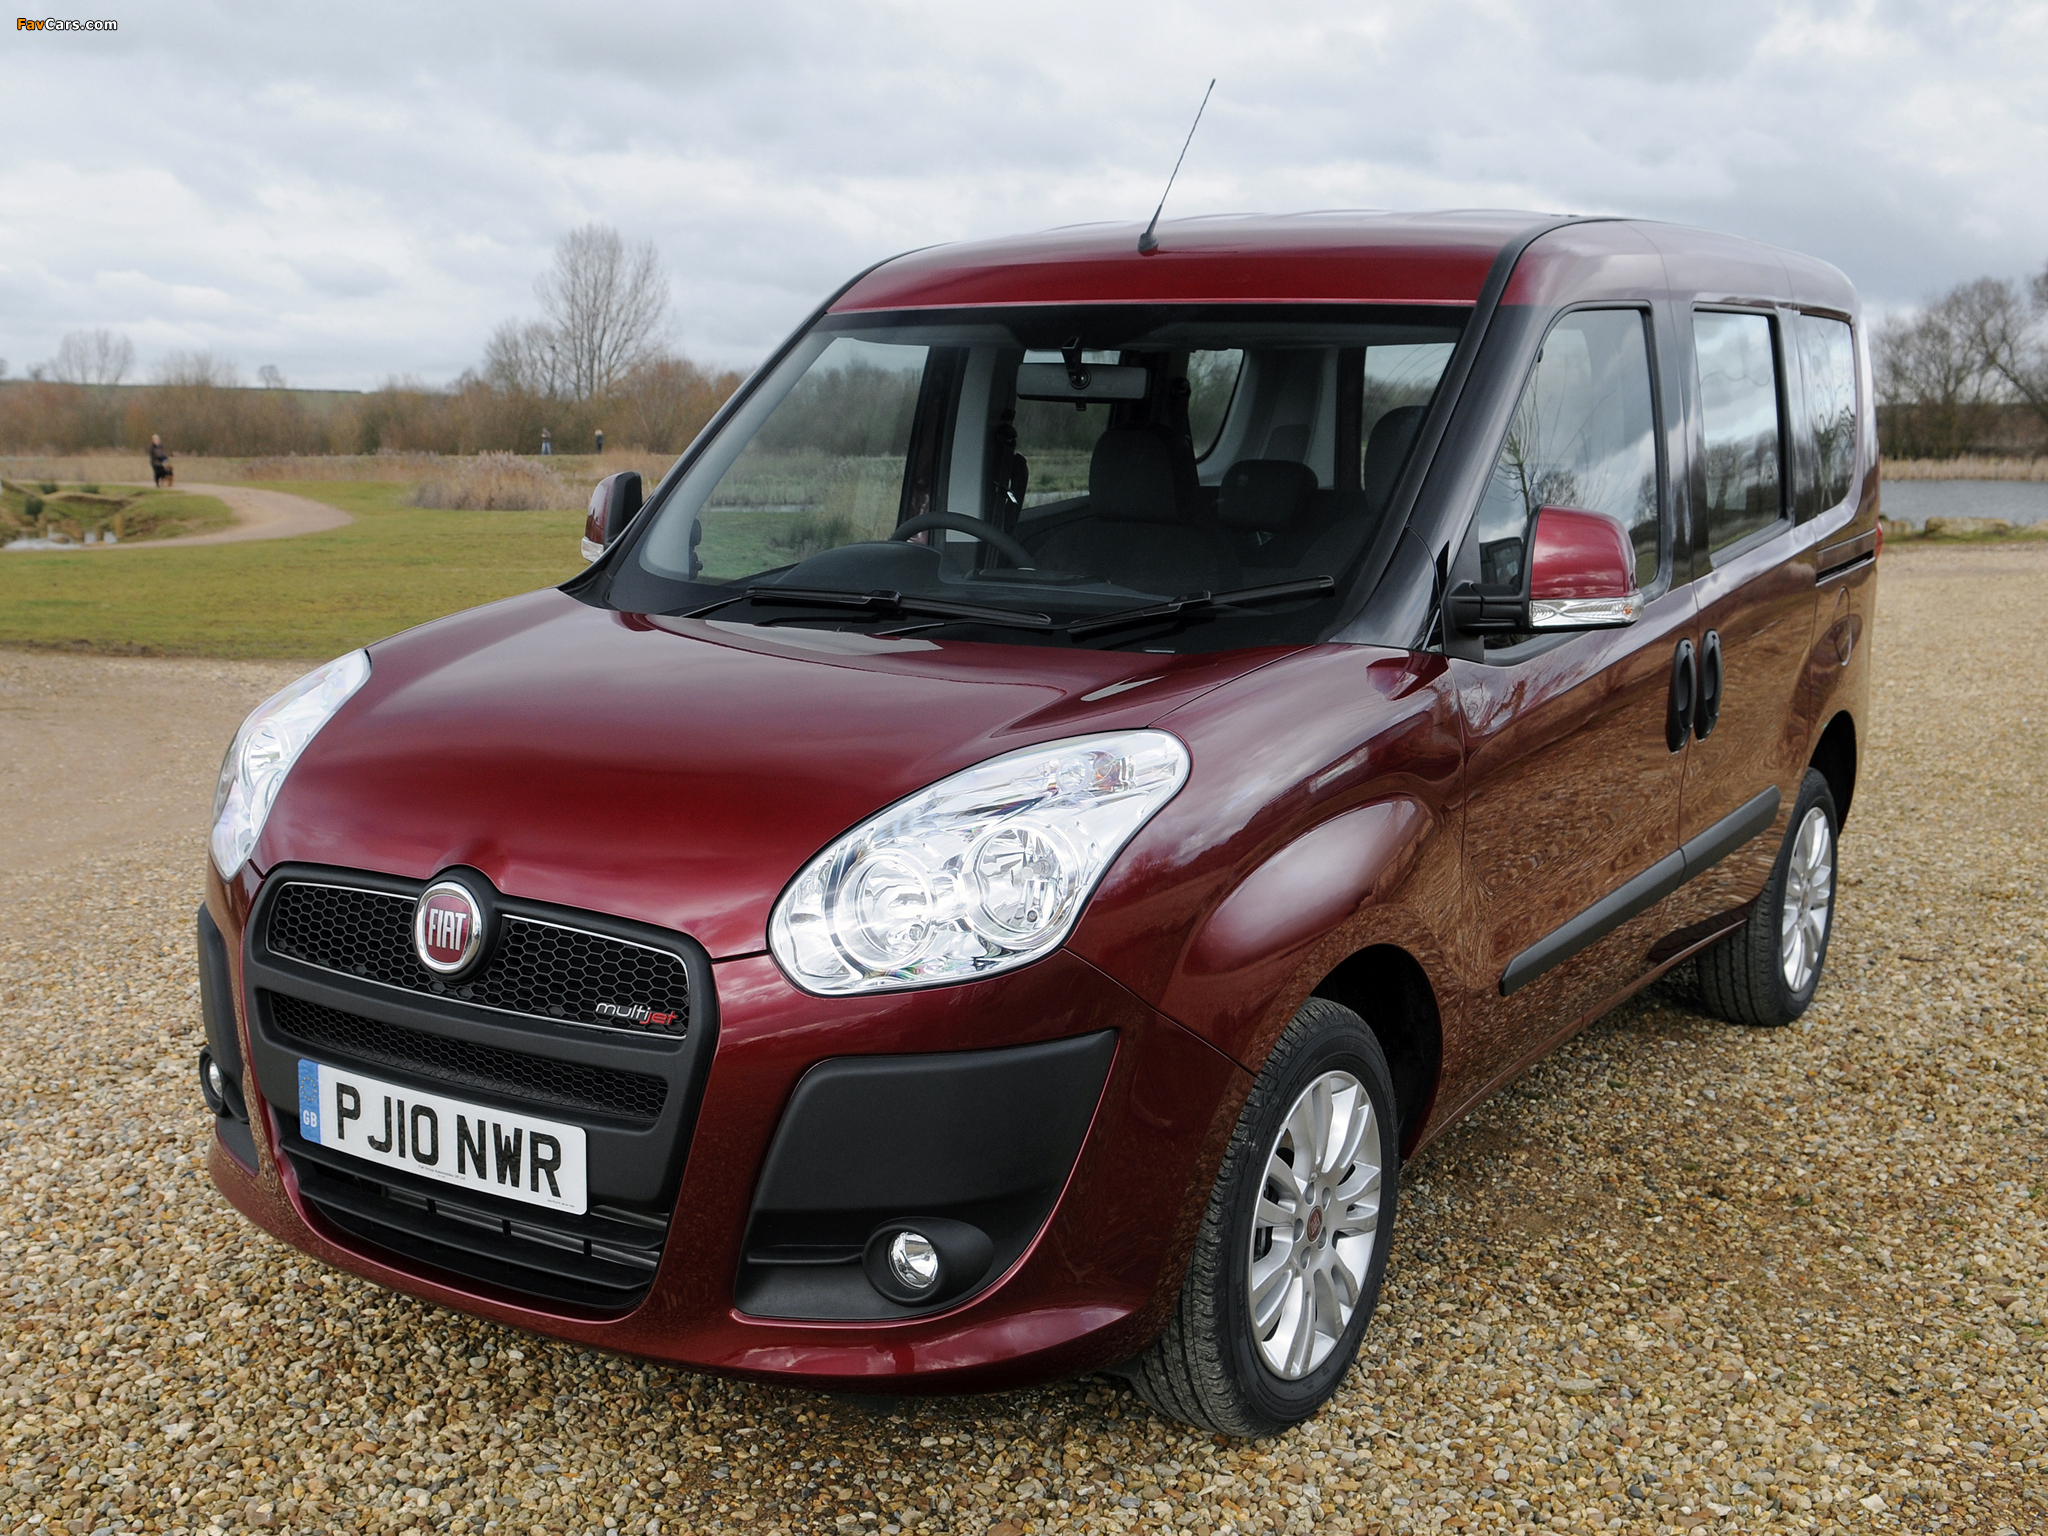 ...The 1.6 16v and 2.0-litre turbodiesels employ Fiat's ground-breaking MultiJet technology to combine...